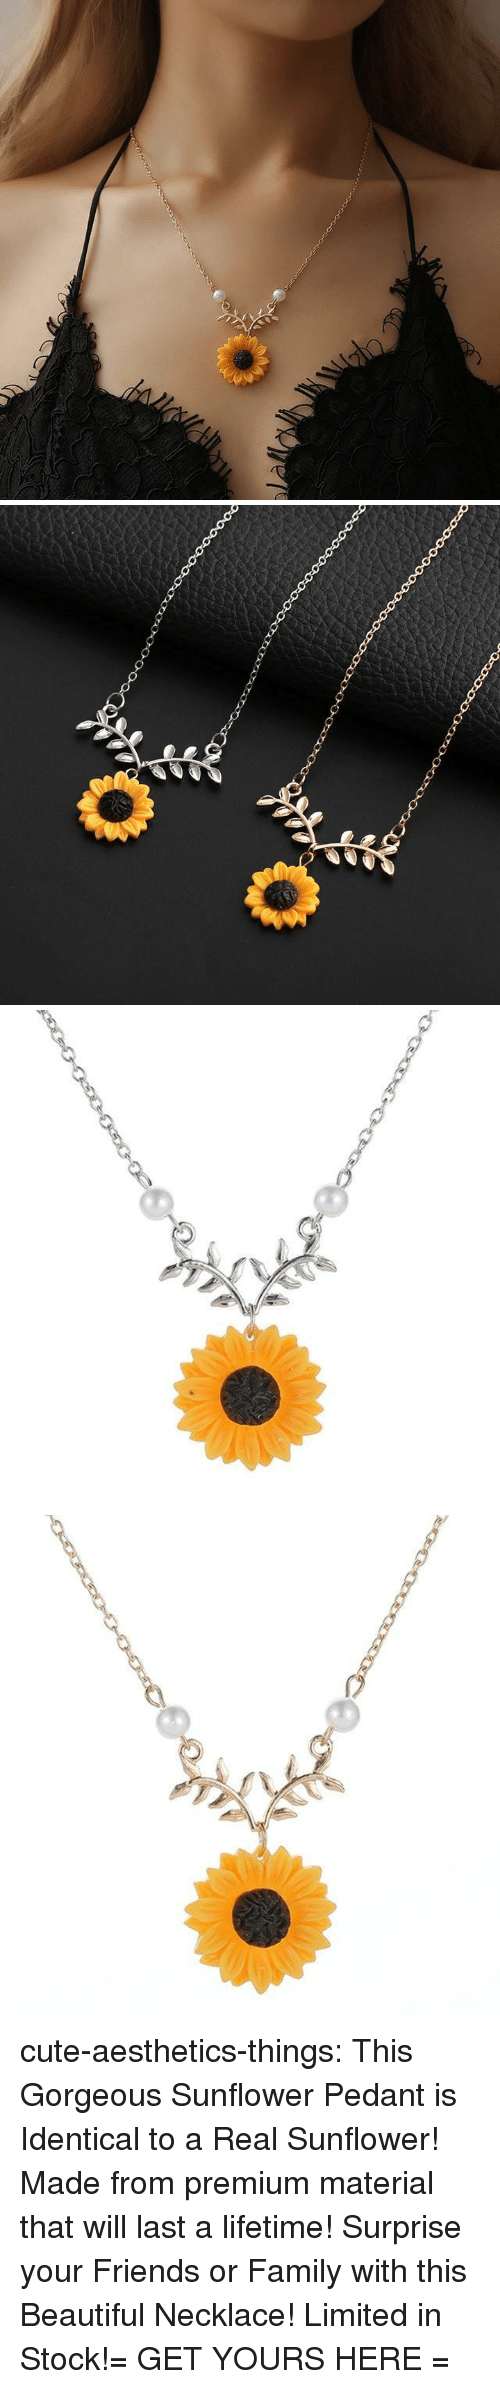 Beautiful, Cute, and Family: cute-aesthetics-things:  This Gorgeous Sunflower Pedant is Identical to a Real Sunflower! Made from premium material that will last a lifetime! Surprise your Friends or Family with this Beautiful Necklace! Limited in Stock!= GET YOURS HERE =